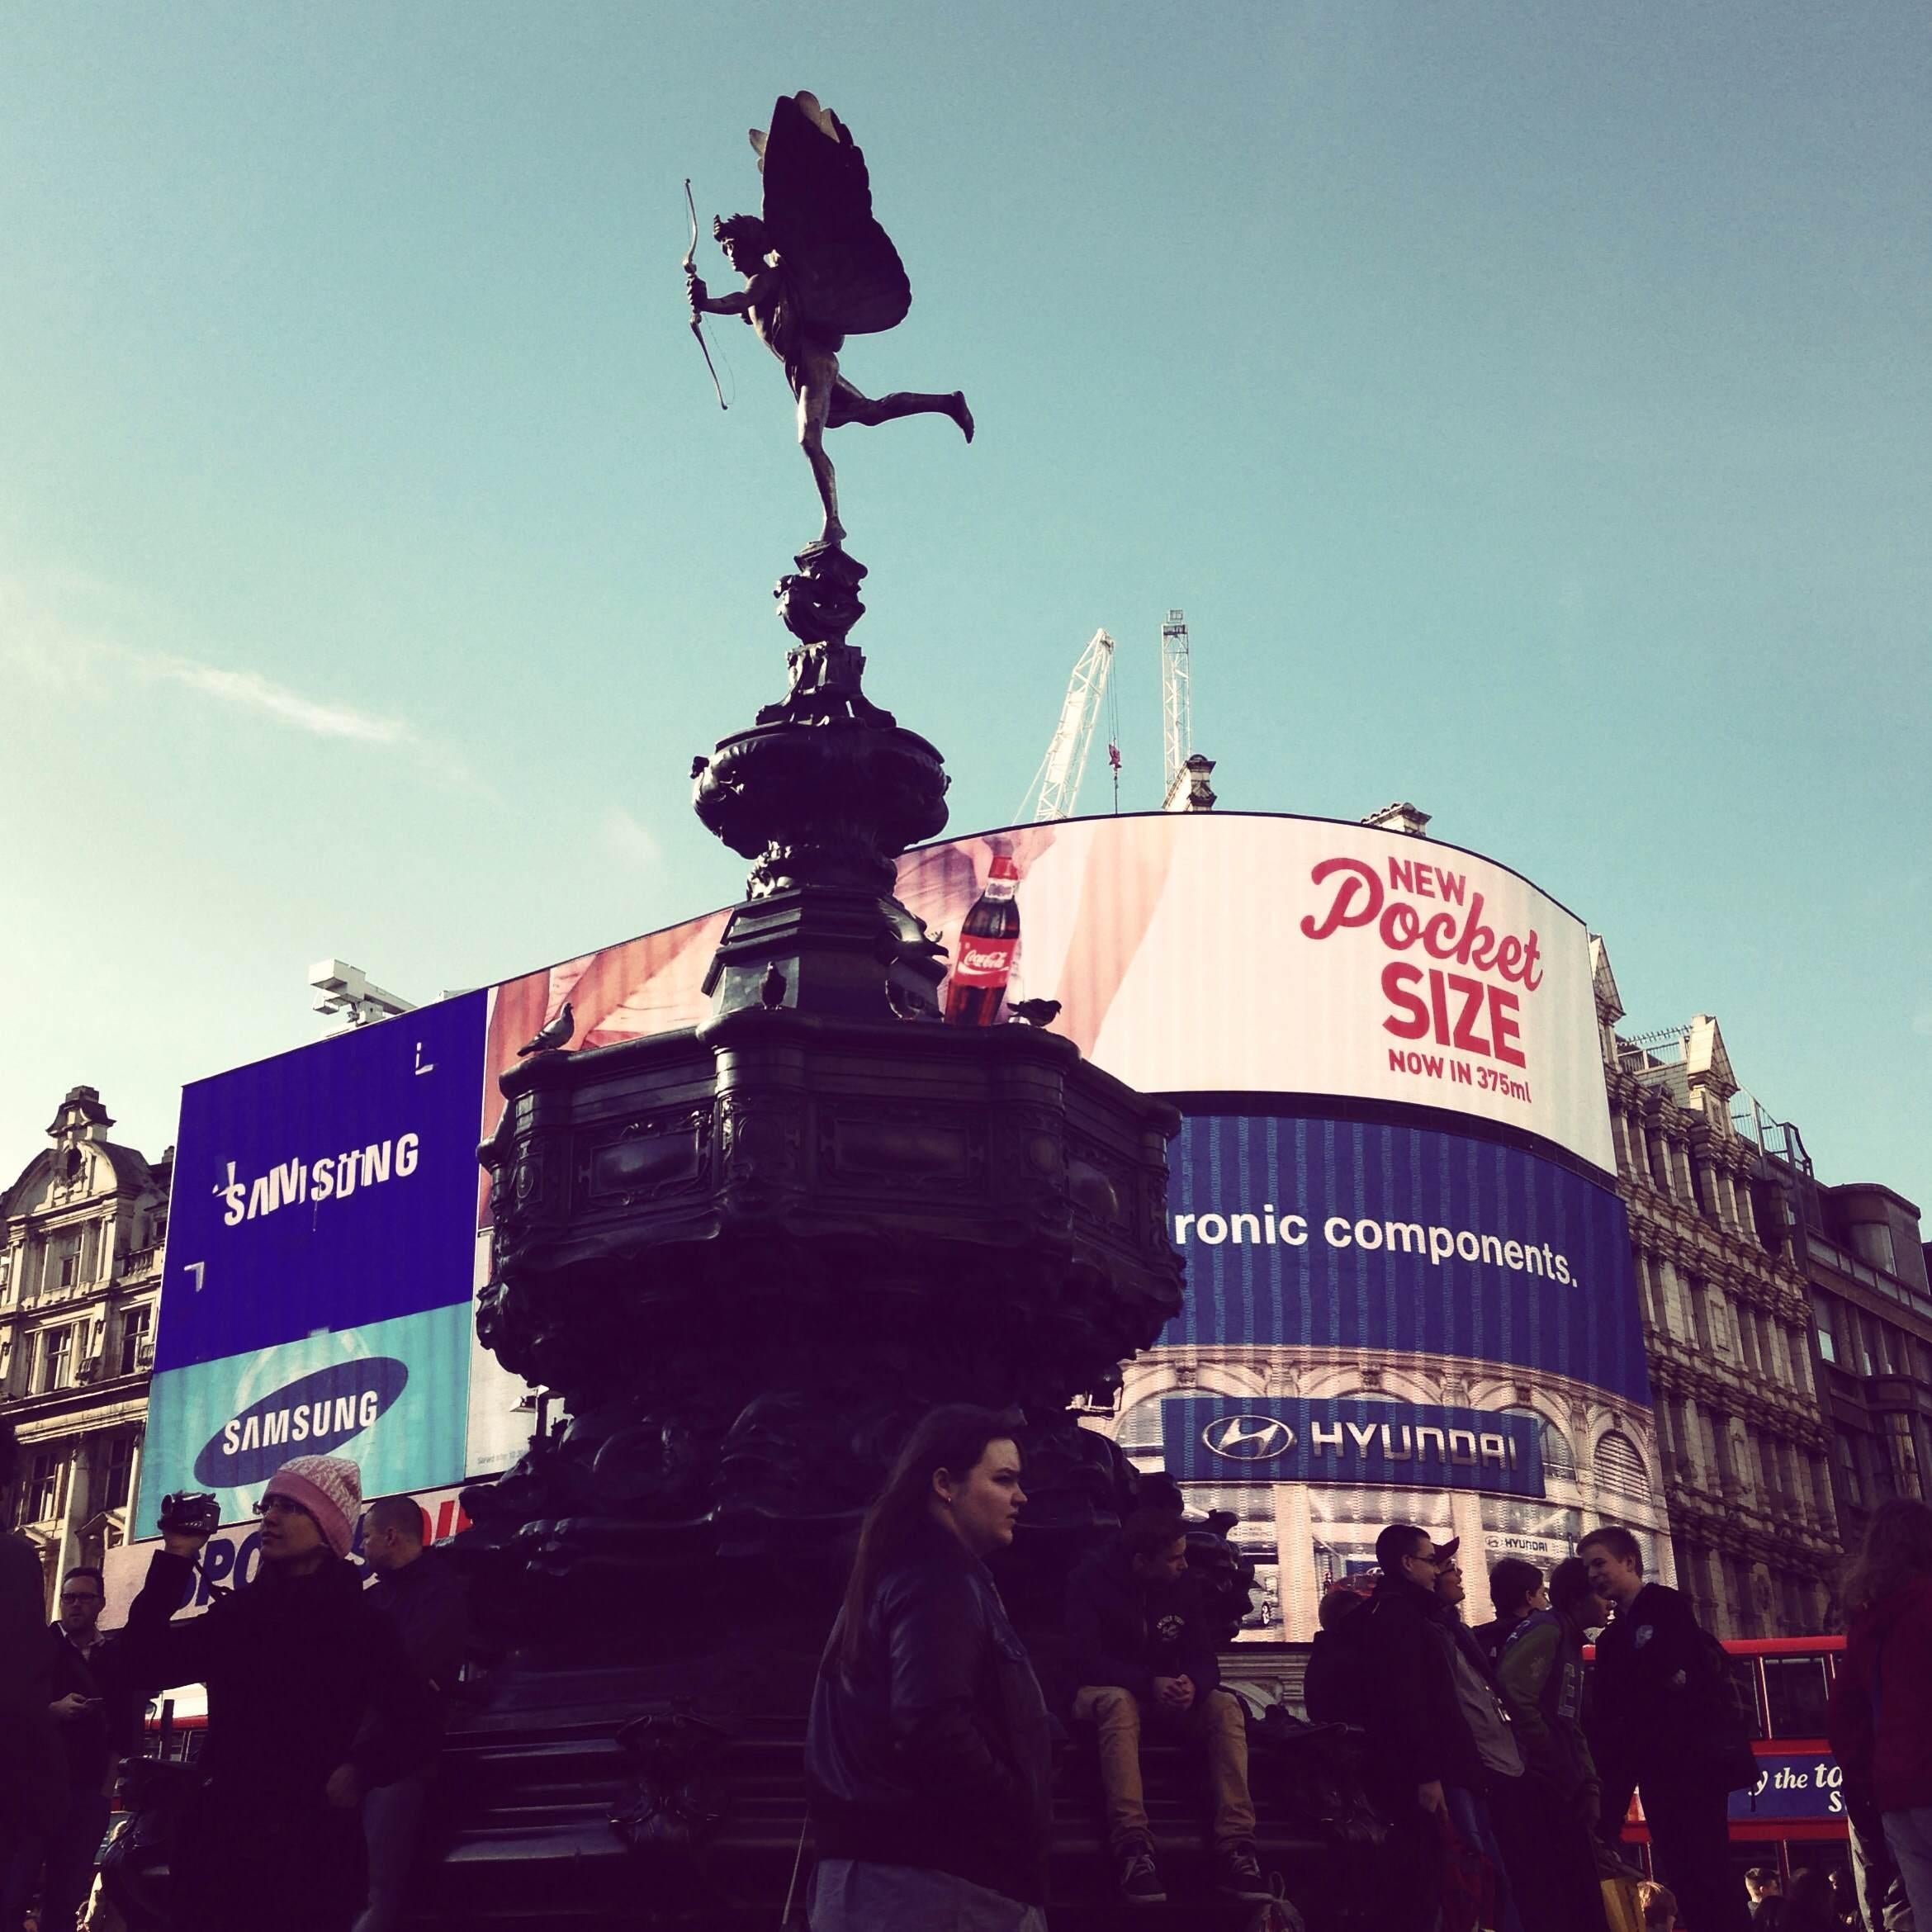 Color rosa en Picadilly Circus